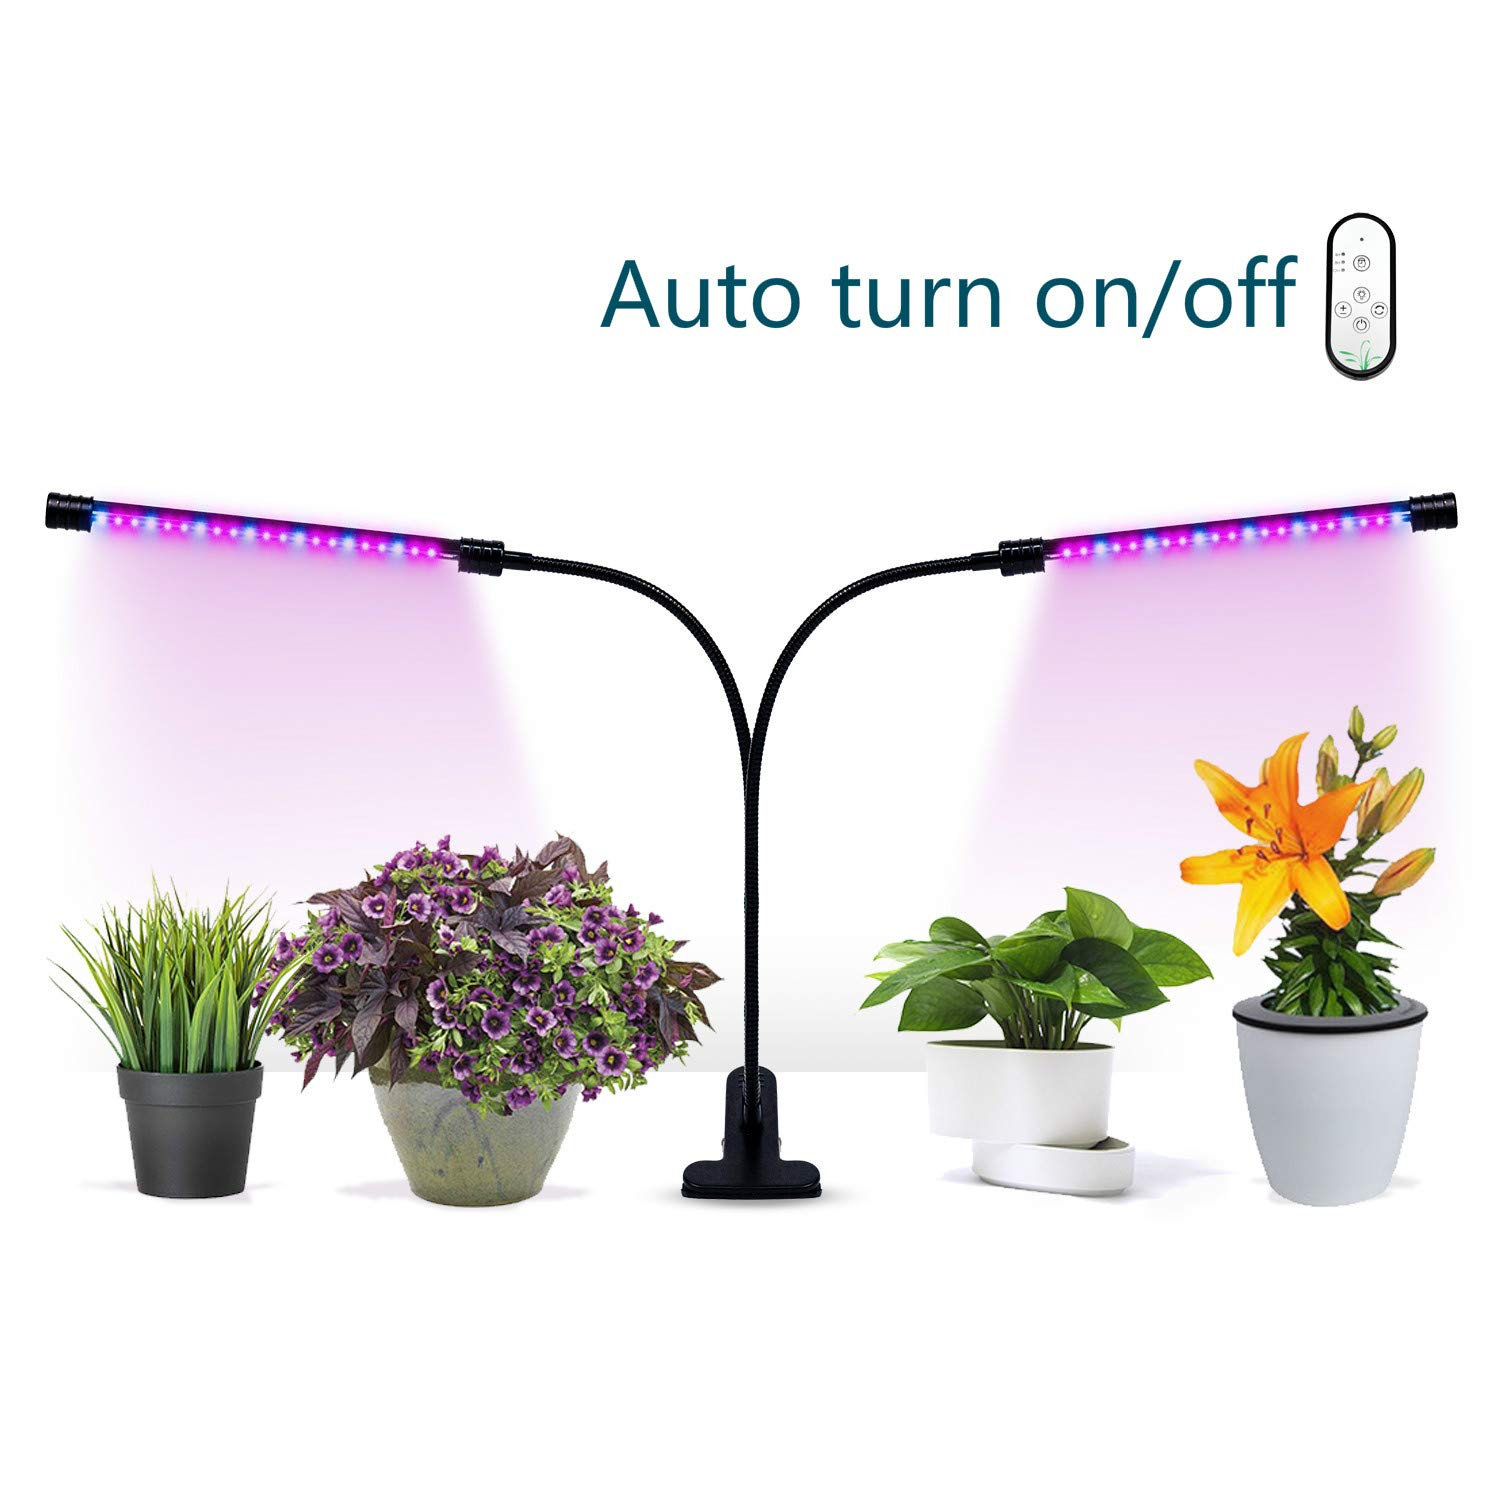 Grow Light, GIGRIN Plant Light 27W Growing Lamp with 4/8/12H Timer for Indoor Plants Seed, Adjustable Goosenecks, Dual Head and Red/Blue LED Bulbs Divided Control (5 Dimmable Levels)